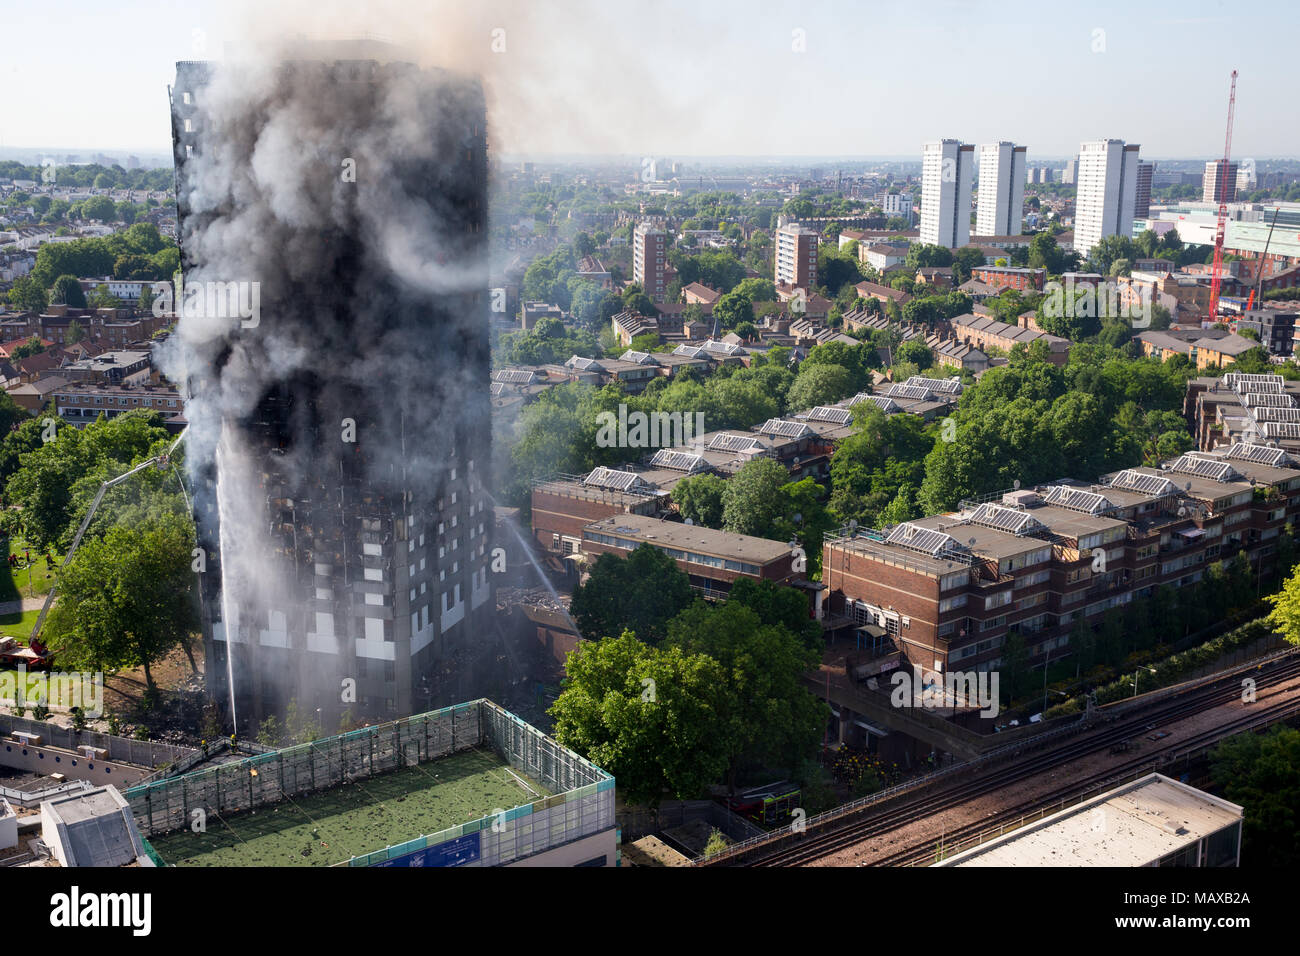 The Grenfell Tower fire on 14 June 2017 in North Kensington, Royal Borough of Kensington and Chelsea. 71 people died and over 70 people were injured. Stock Photo